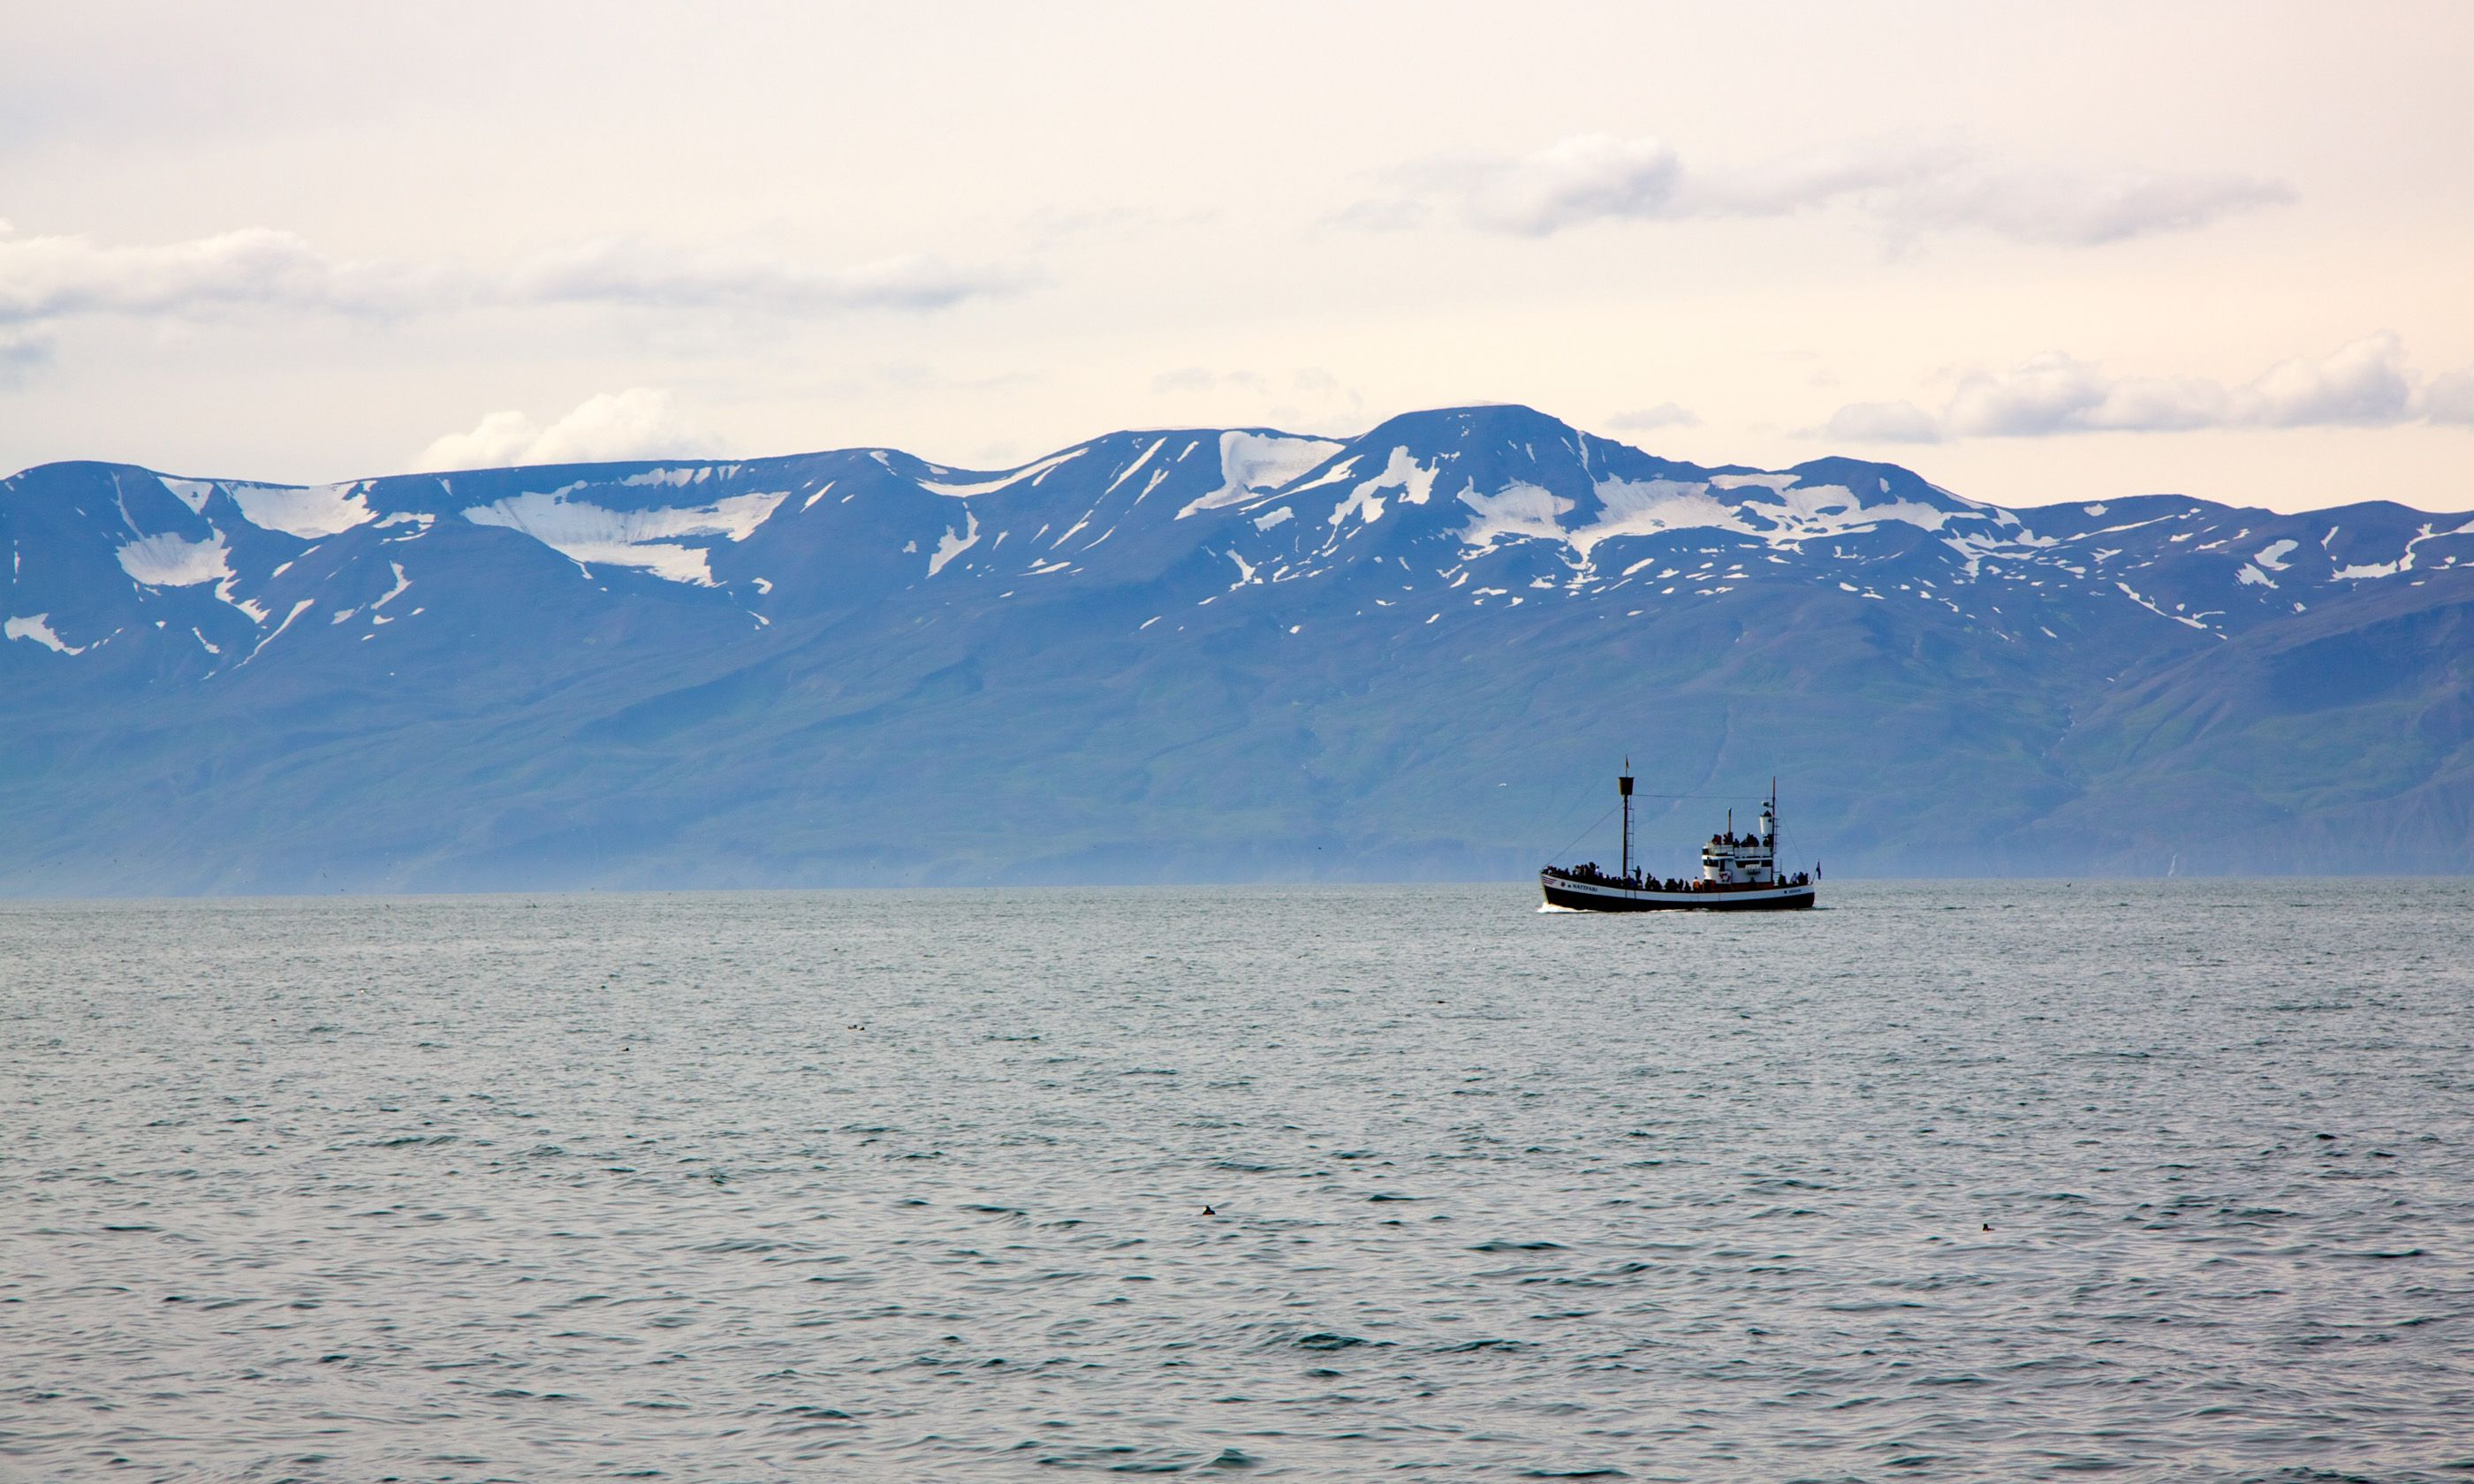 Whale watching boat in Shaky Bay, Iceland (Peter Moore)